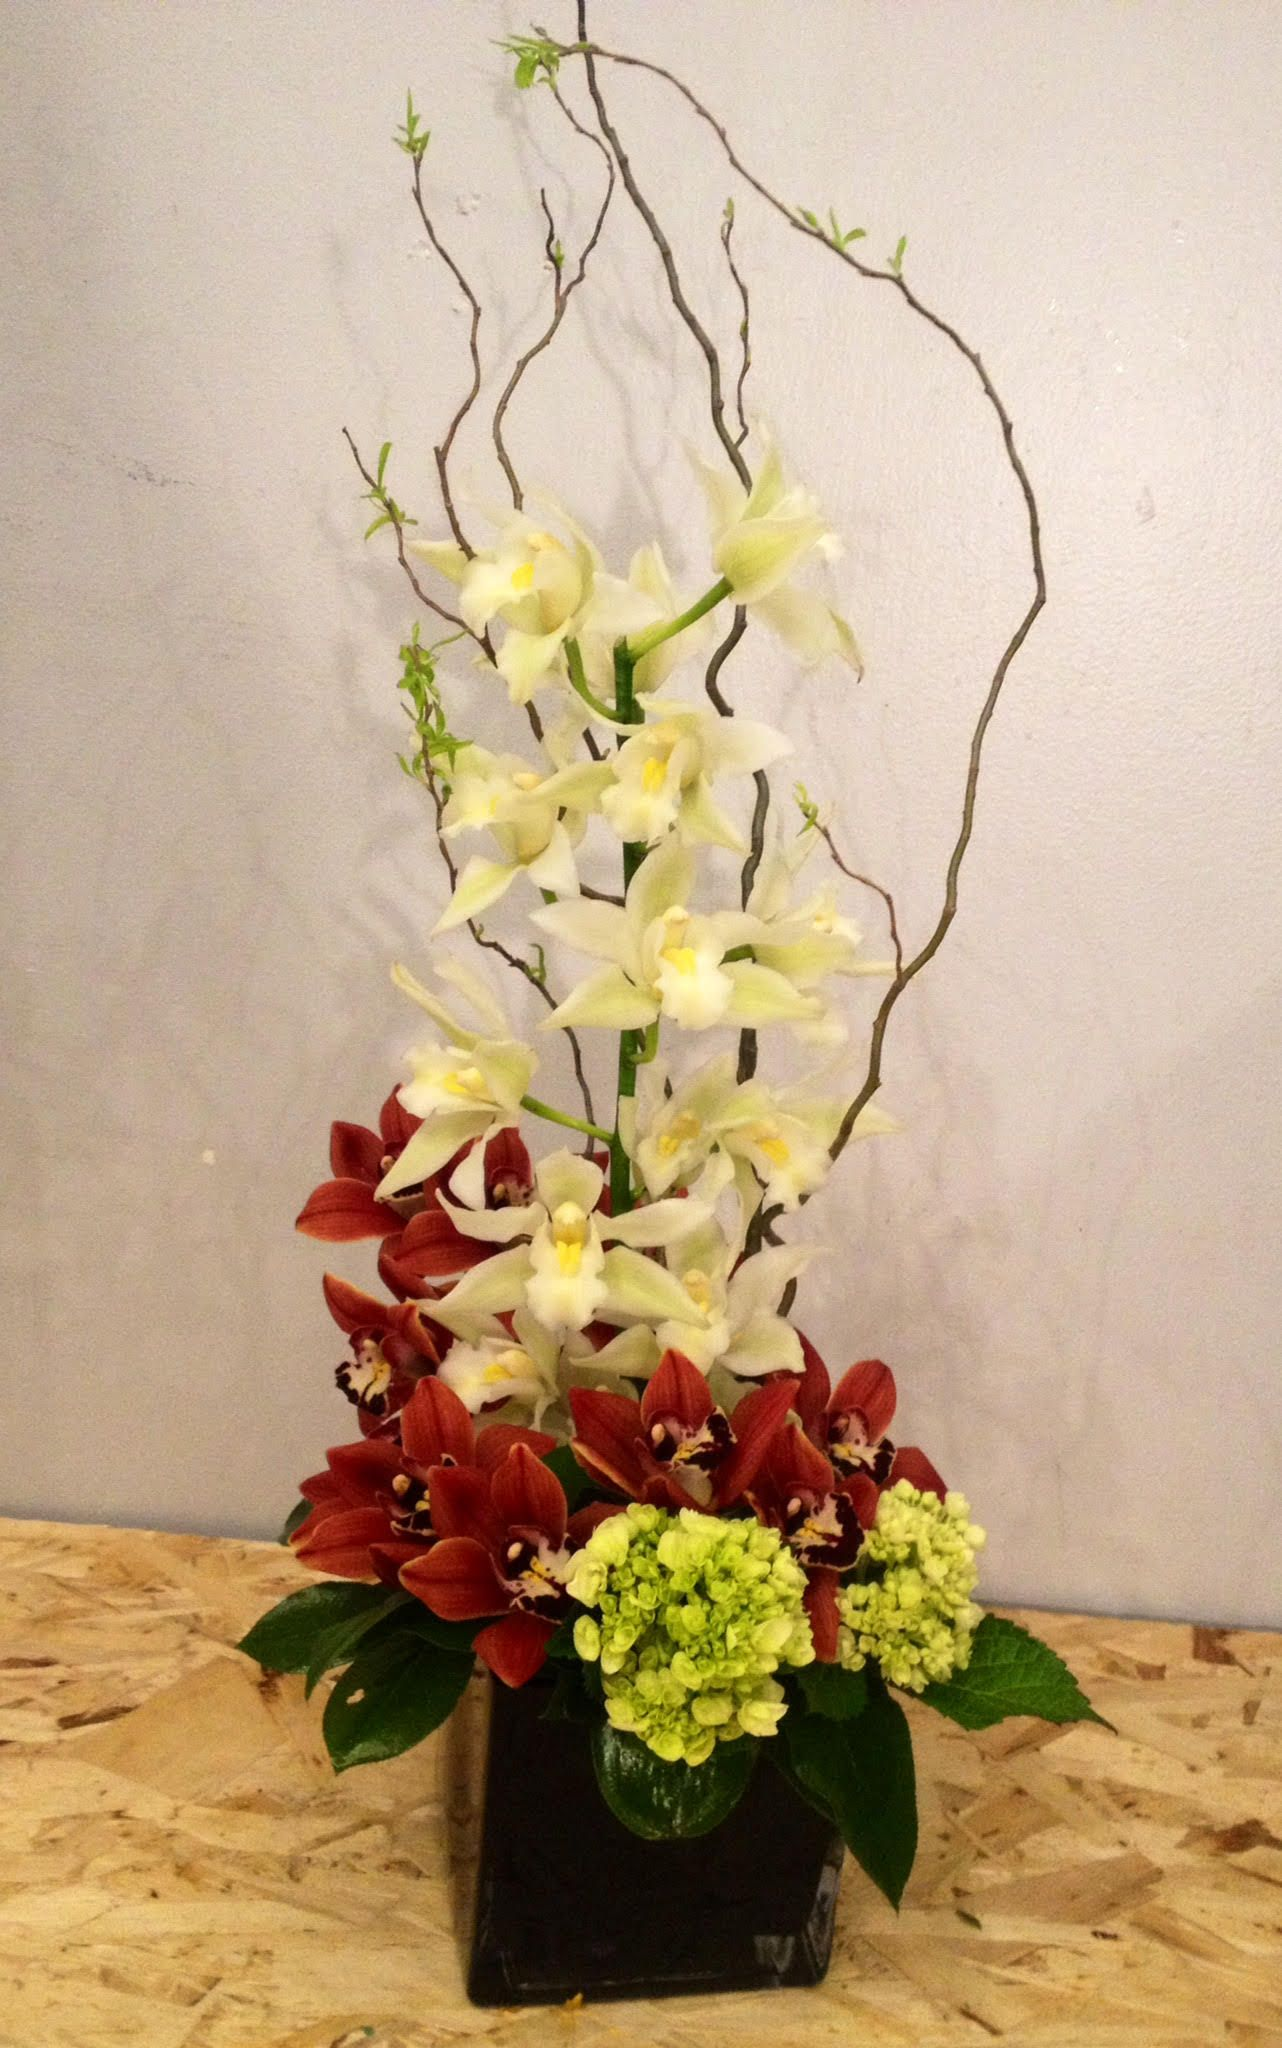 office floral arrangements. Only For Connoisseurs - A Perfect Floral Creation! #flowers #fresh # Arrangement Office Arrangements M